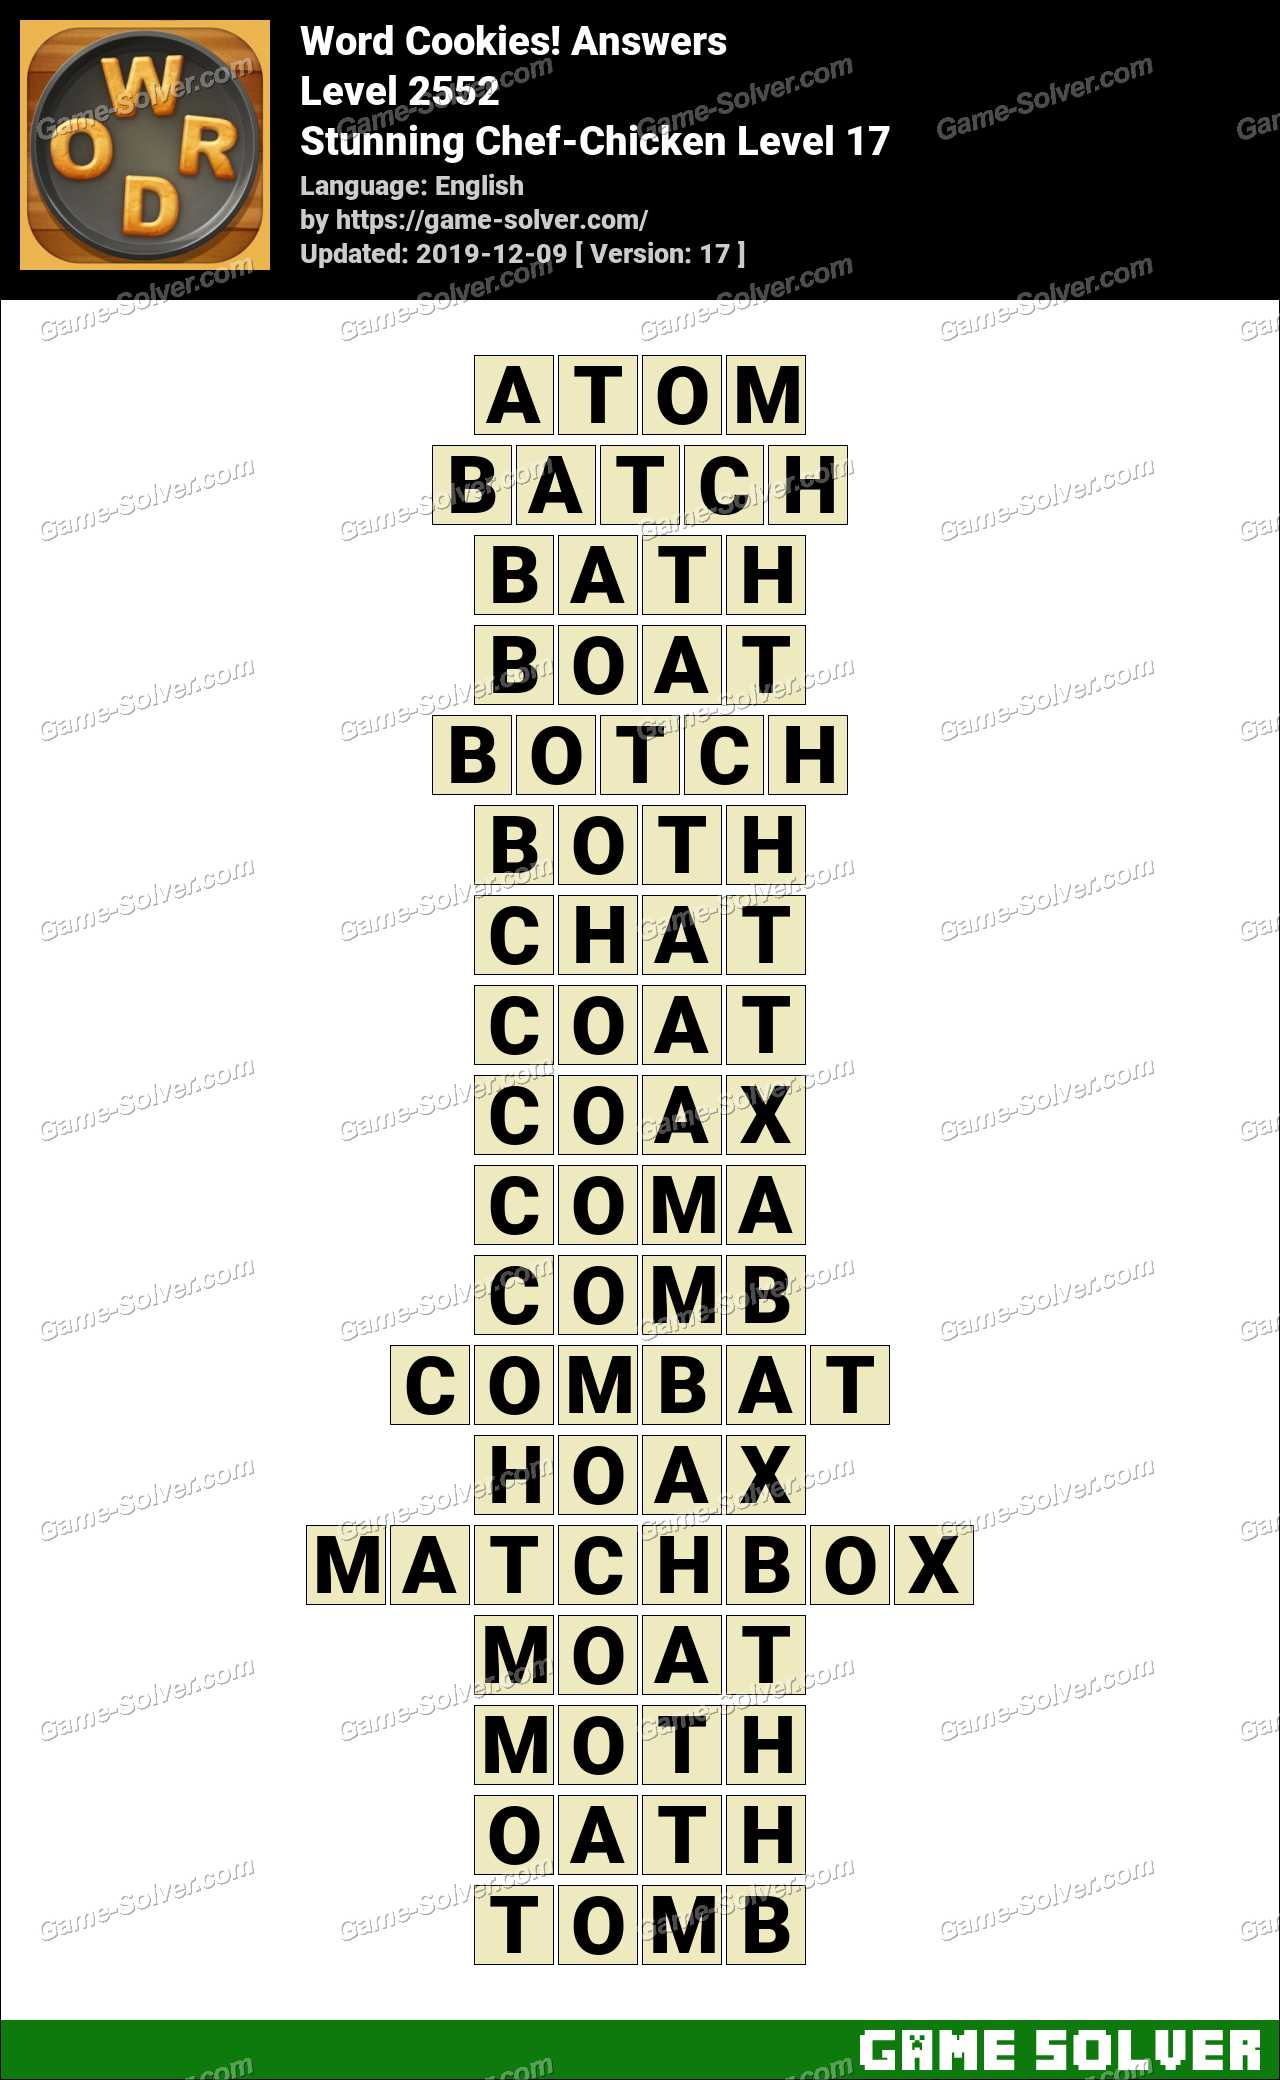 Word Cookies Stunning Chef-Chicken Level 17 Answers